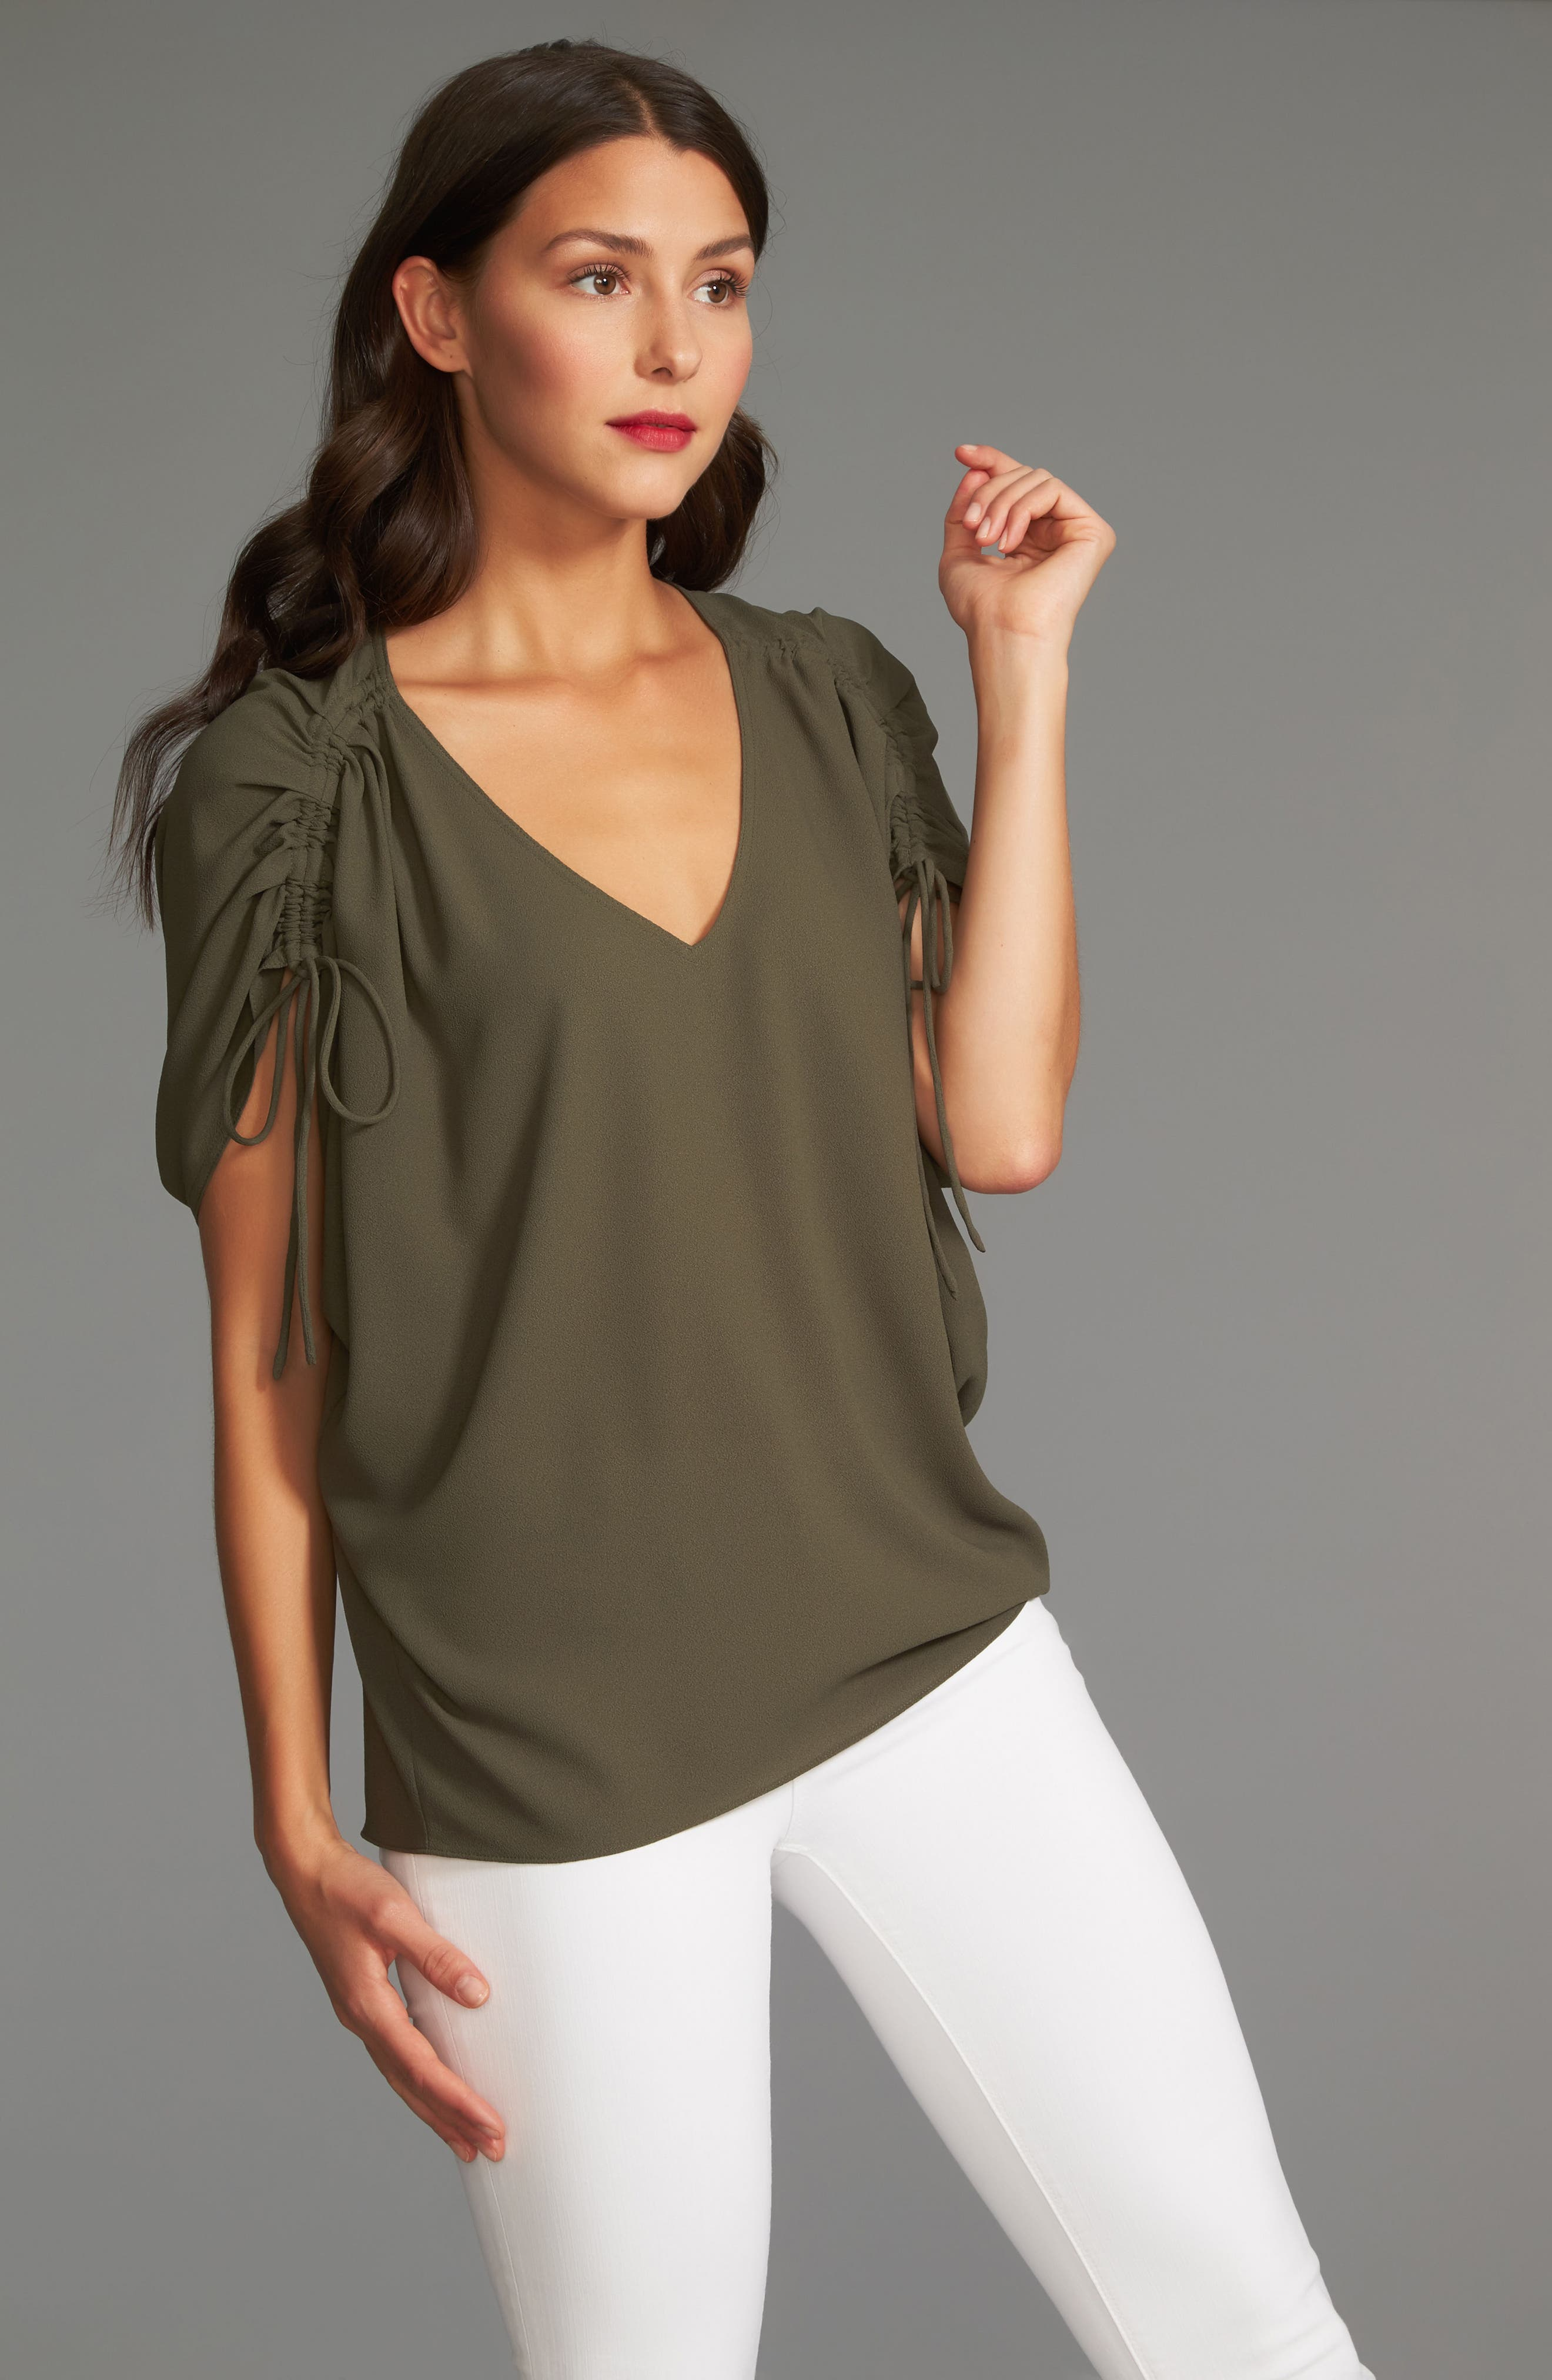 Cinch Sleeve Blouse,                             Alternate thumbnail 3, color,                             311-Olive Tree